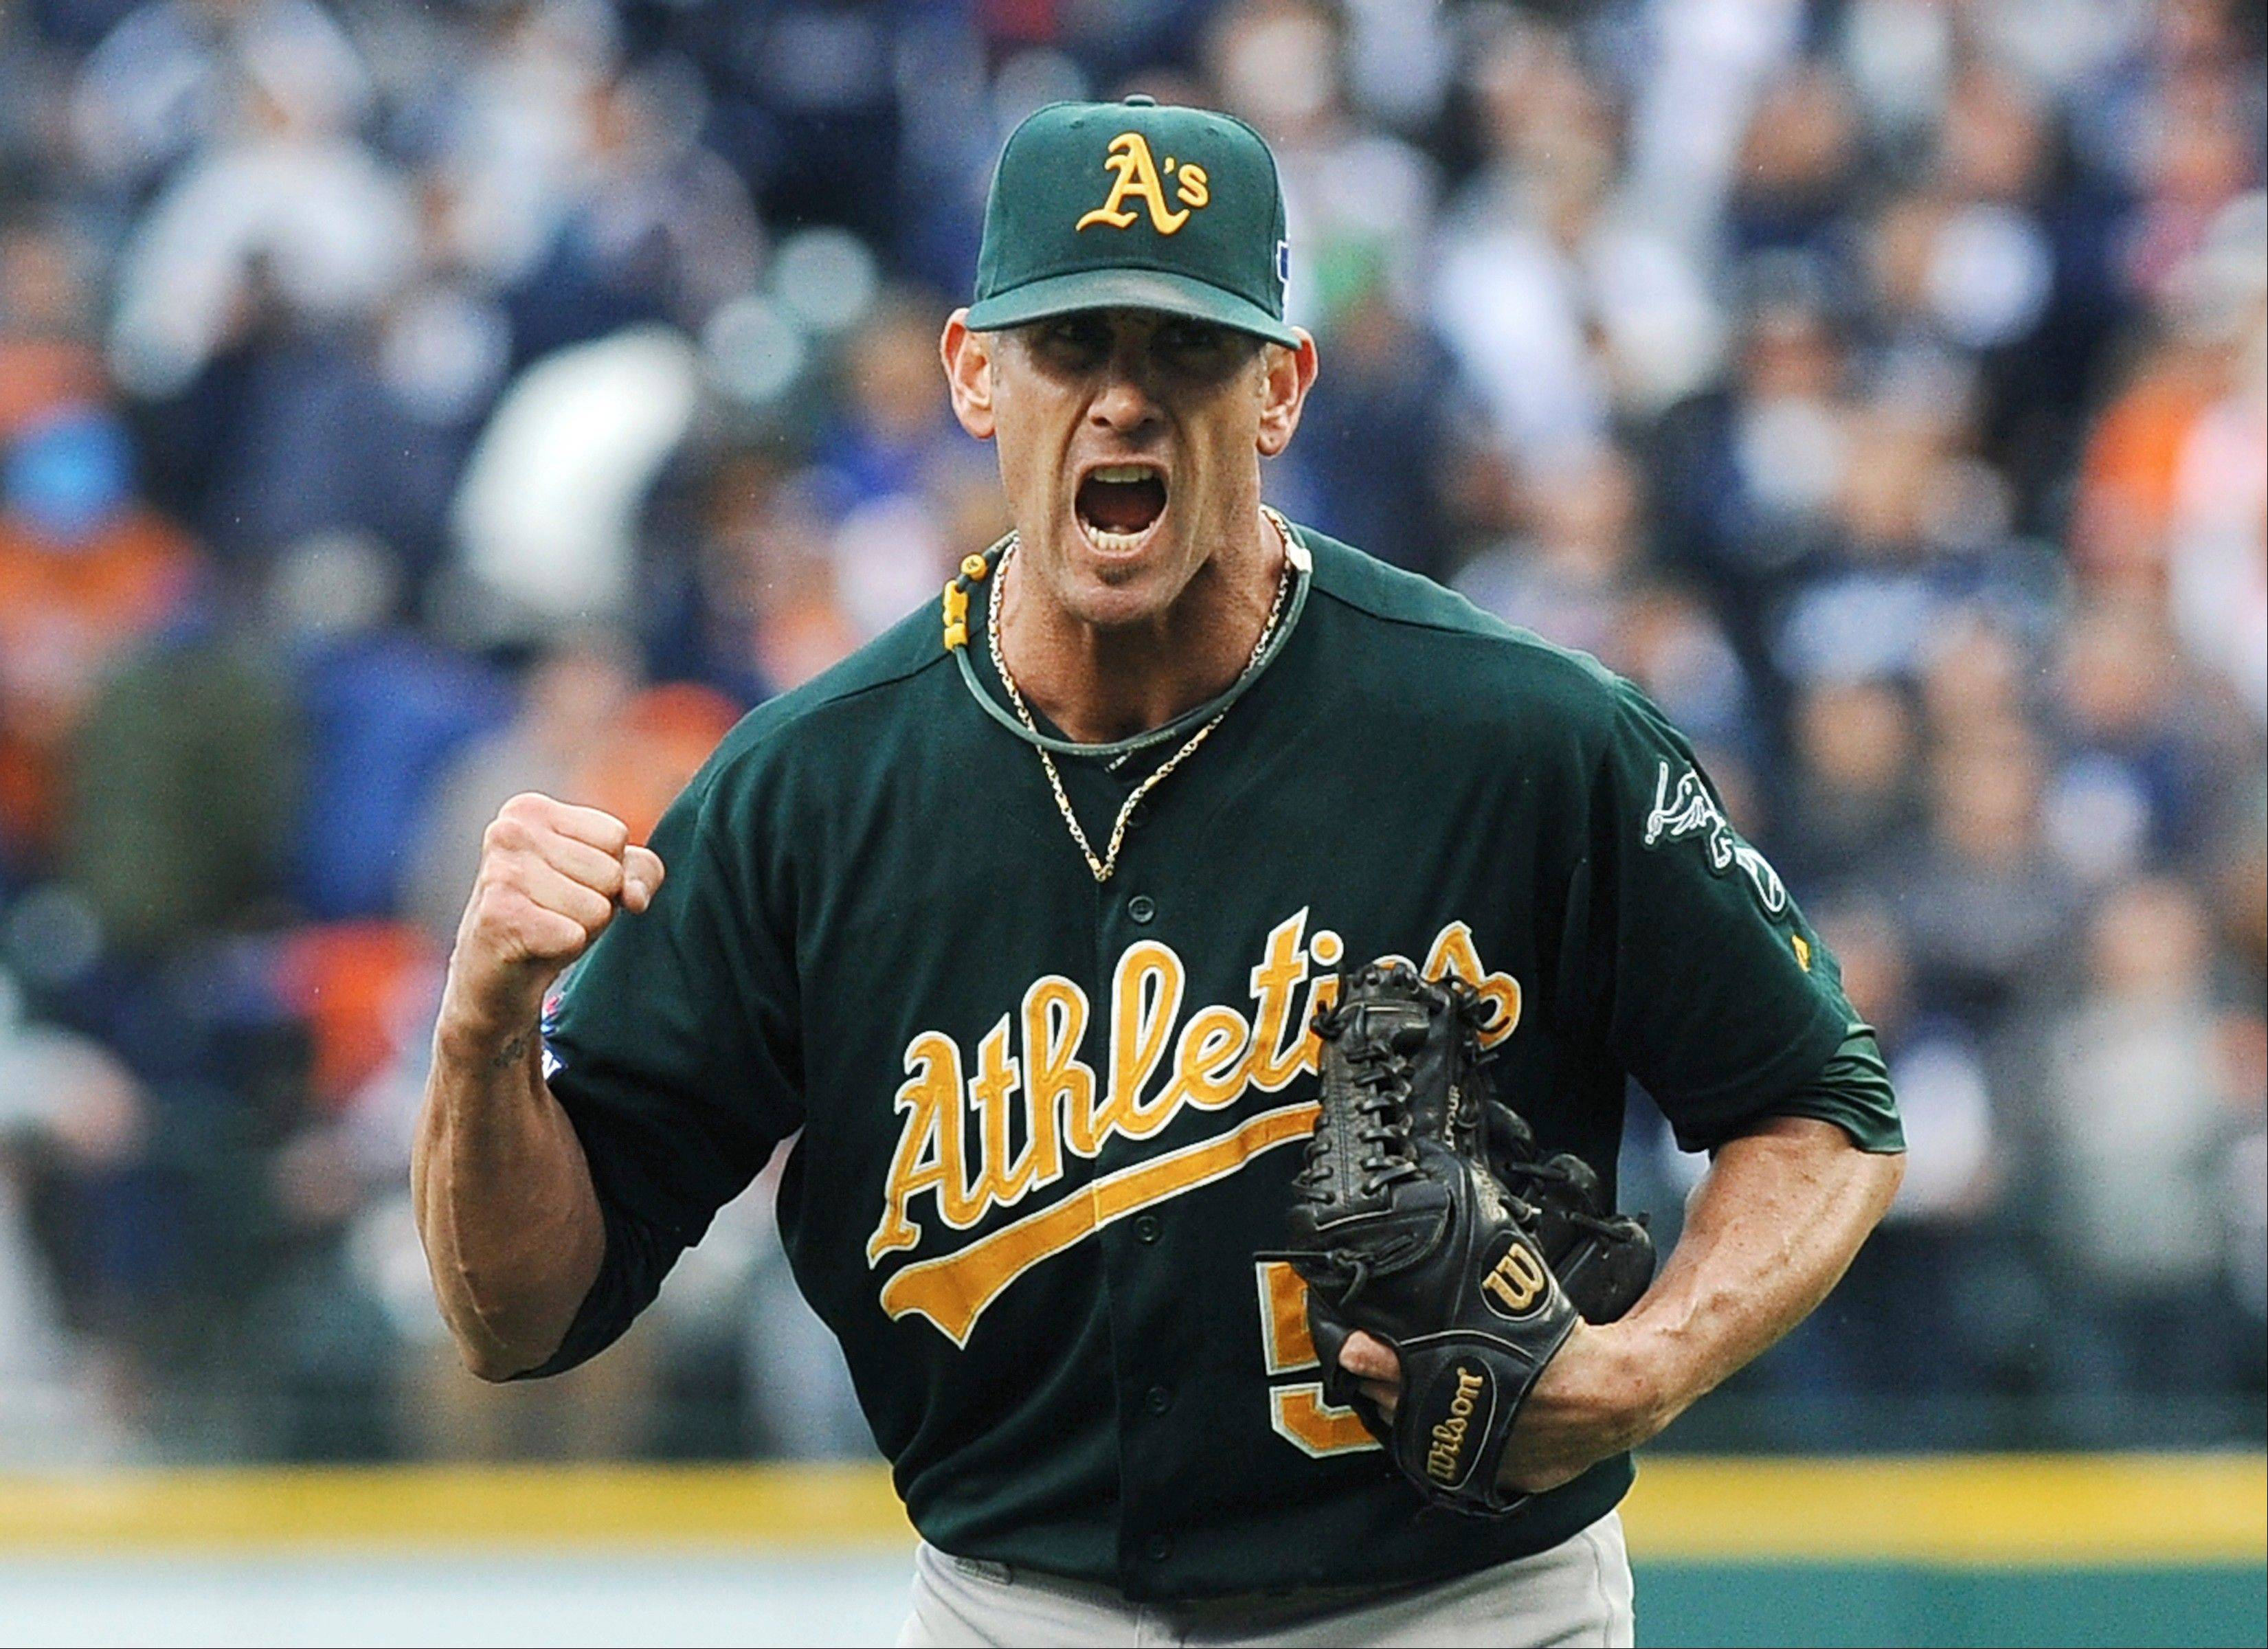 A's take 2-1 series lead over Tigers